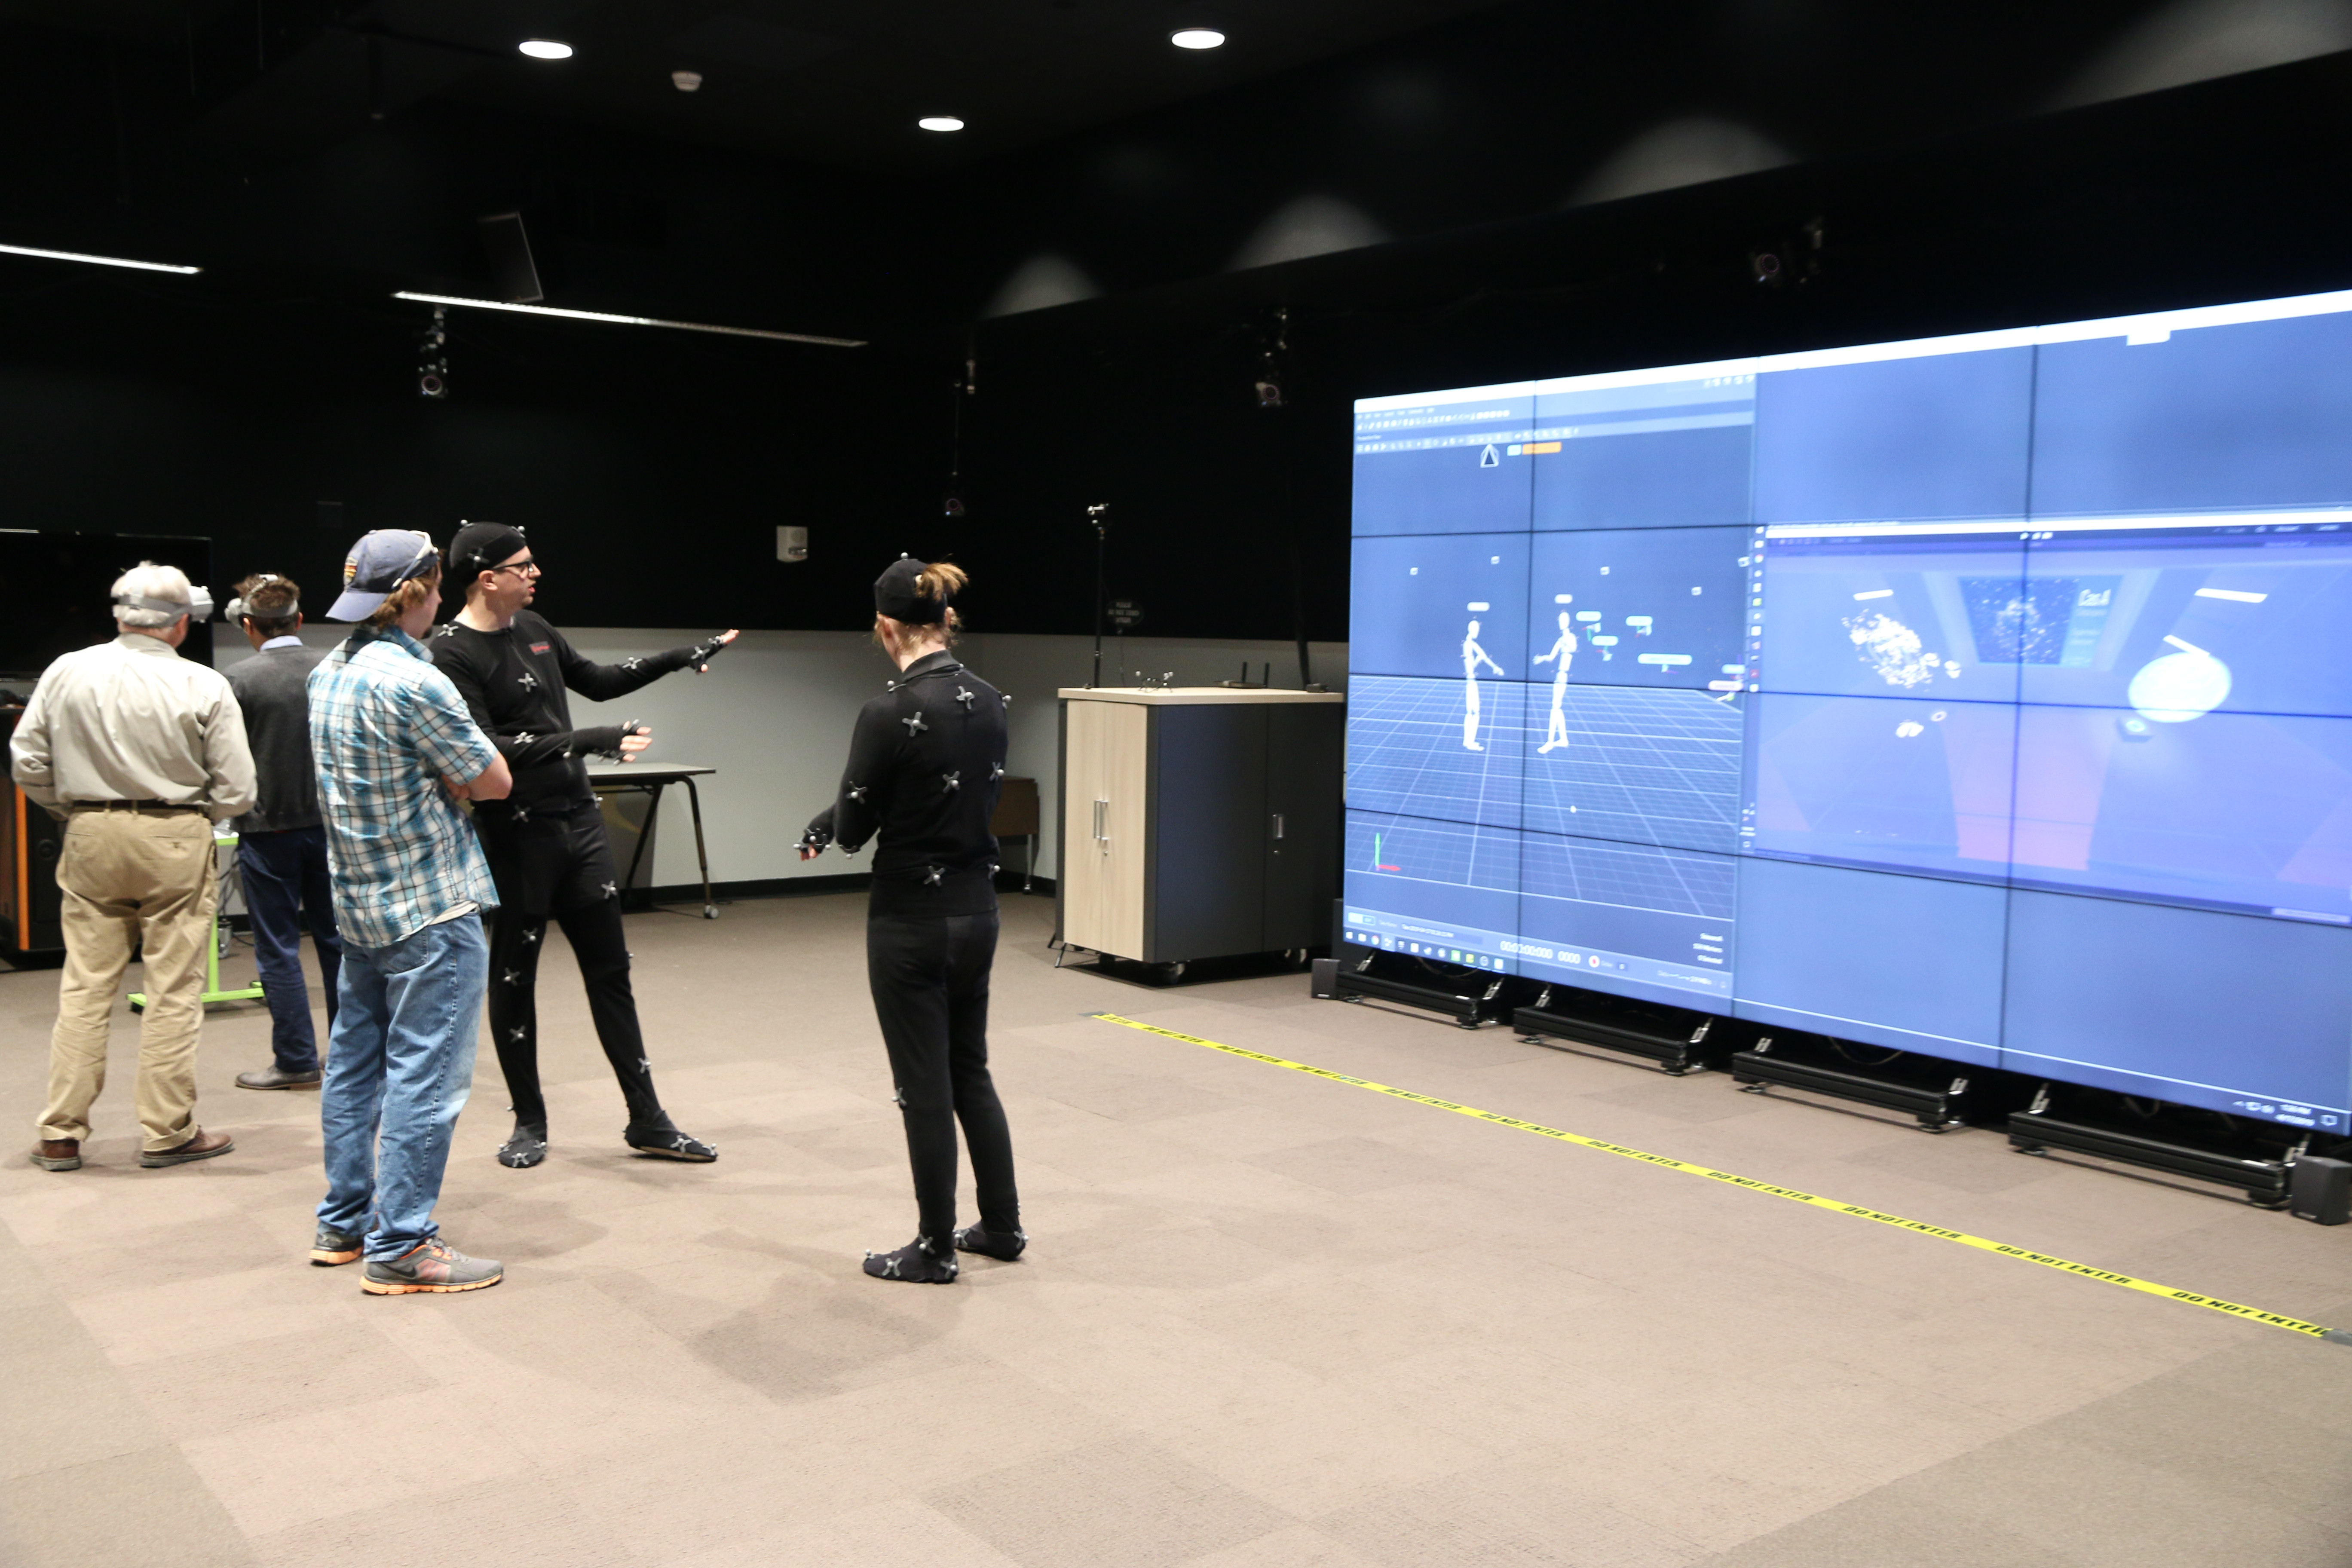 Envision Center students demonstrating the motion capture suits that track a user's movement and insert a representation of the user into the virtual environment